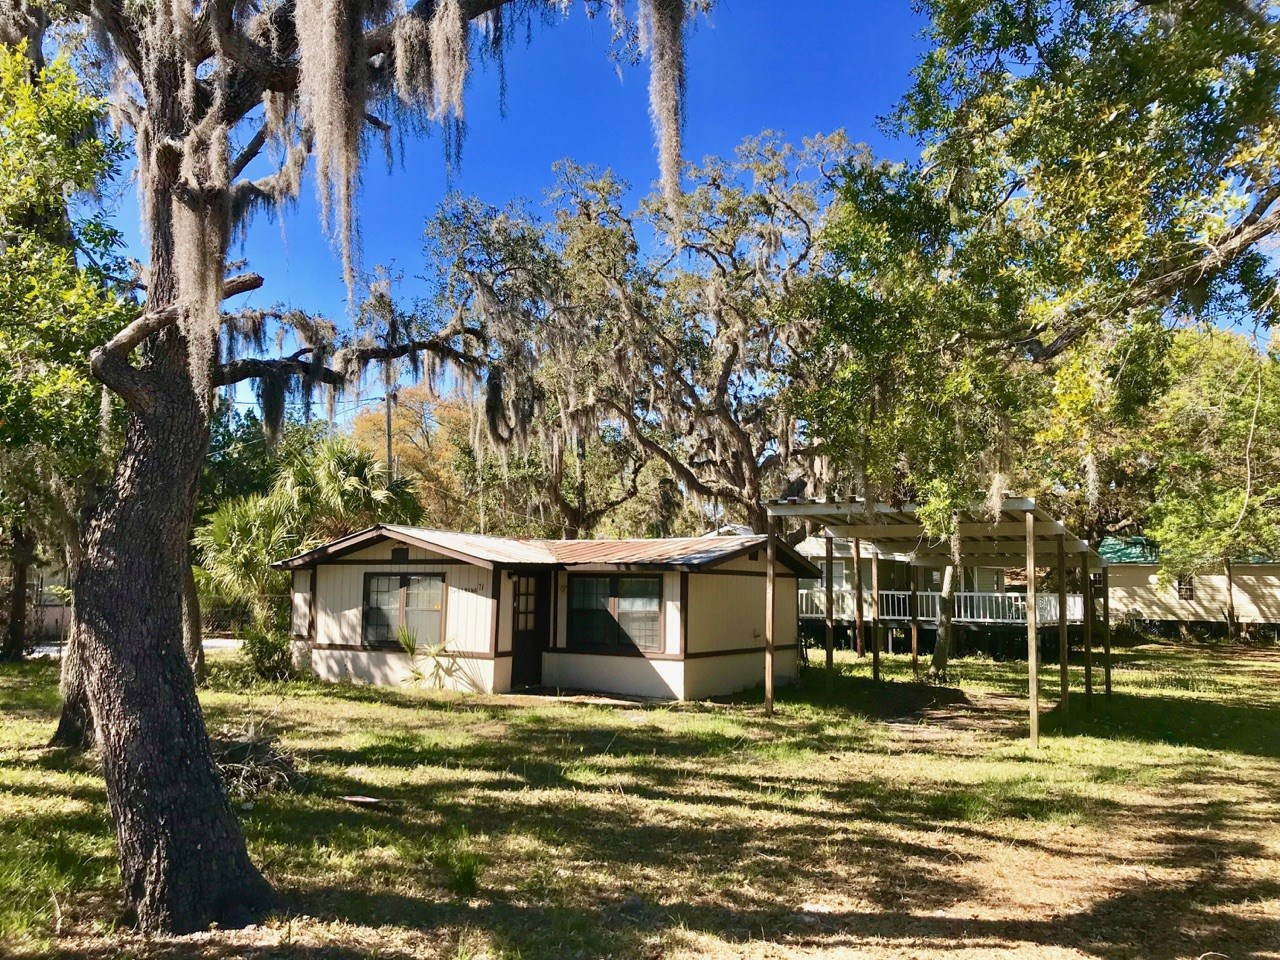 WEEKEND RETREAT IN SUWANNEE,FLORIDA